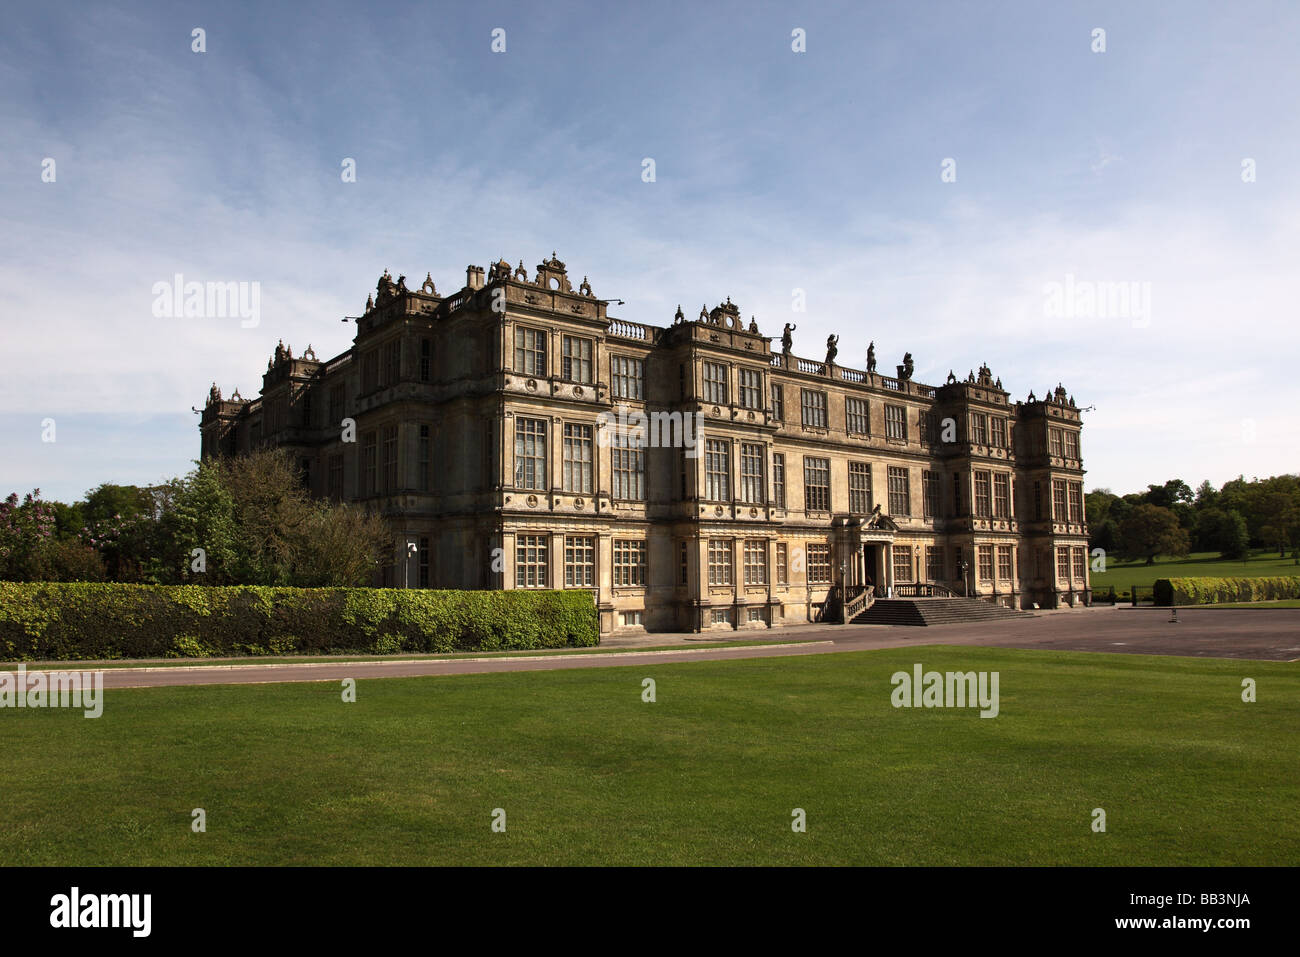 Longleat House, Warminster, Wiltshire - Stock Image